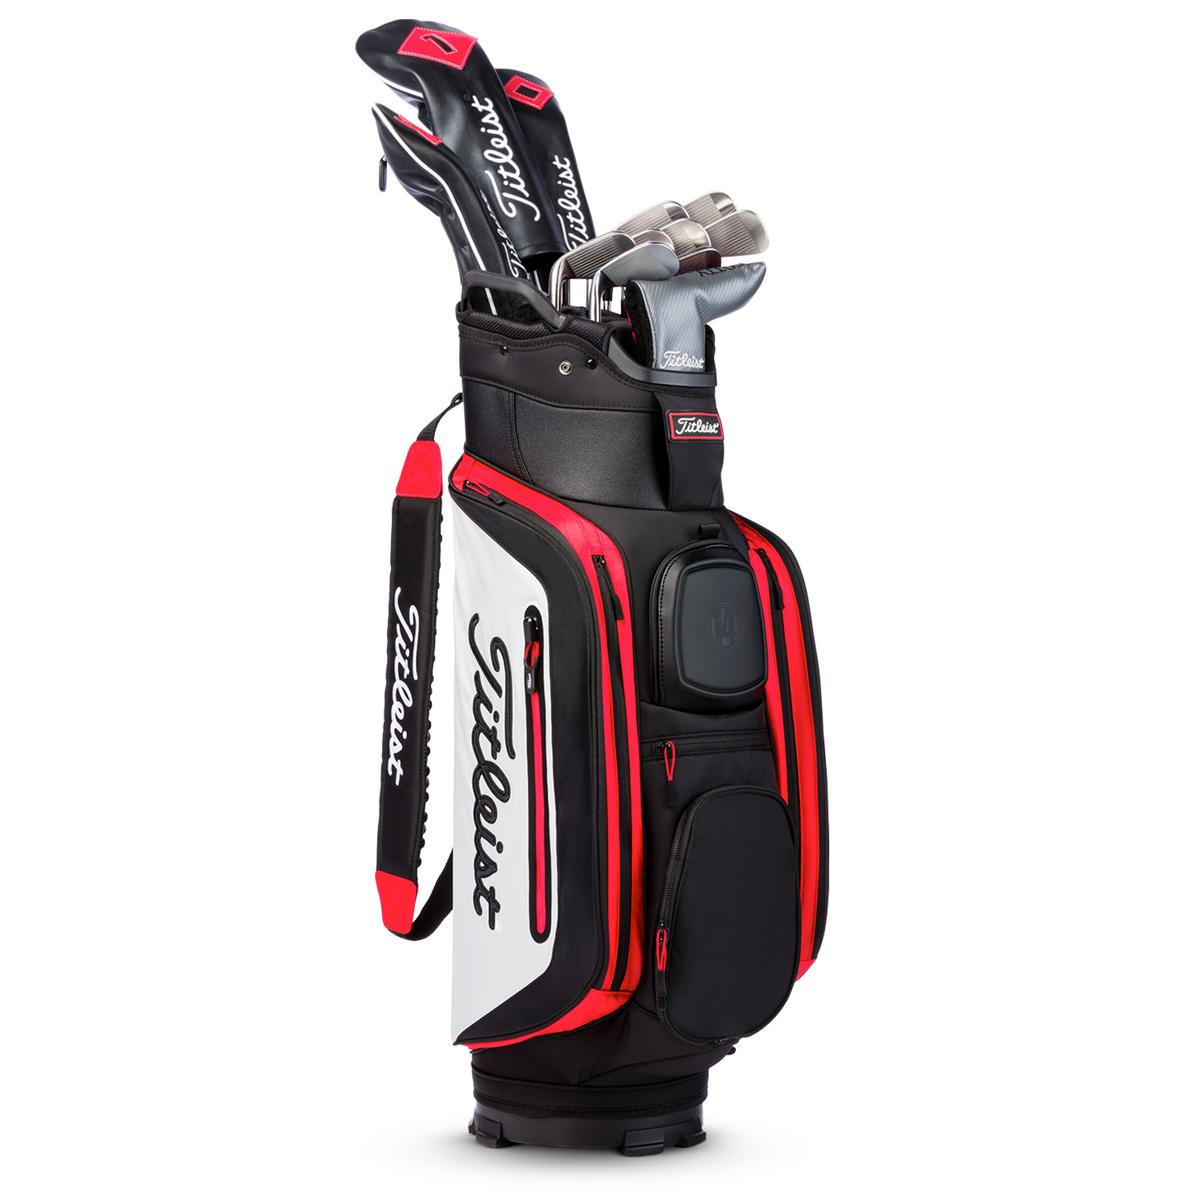 Club 14 Cart Bag Leist